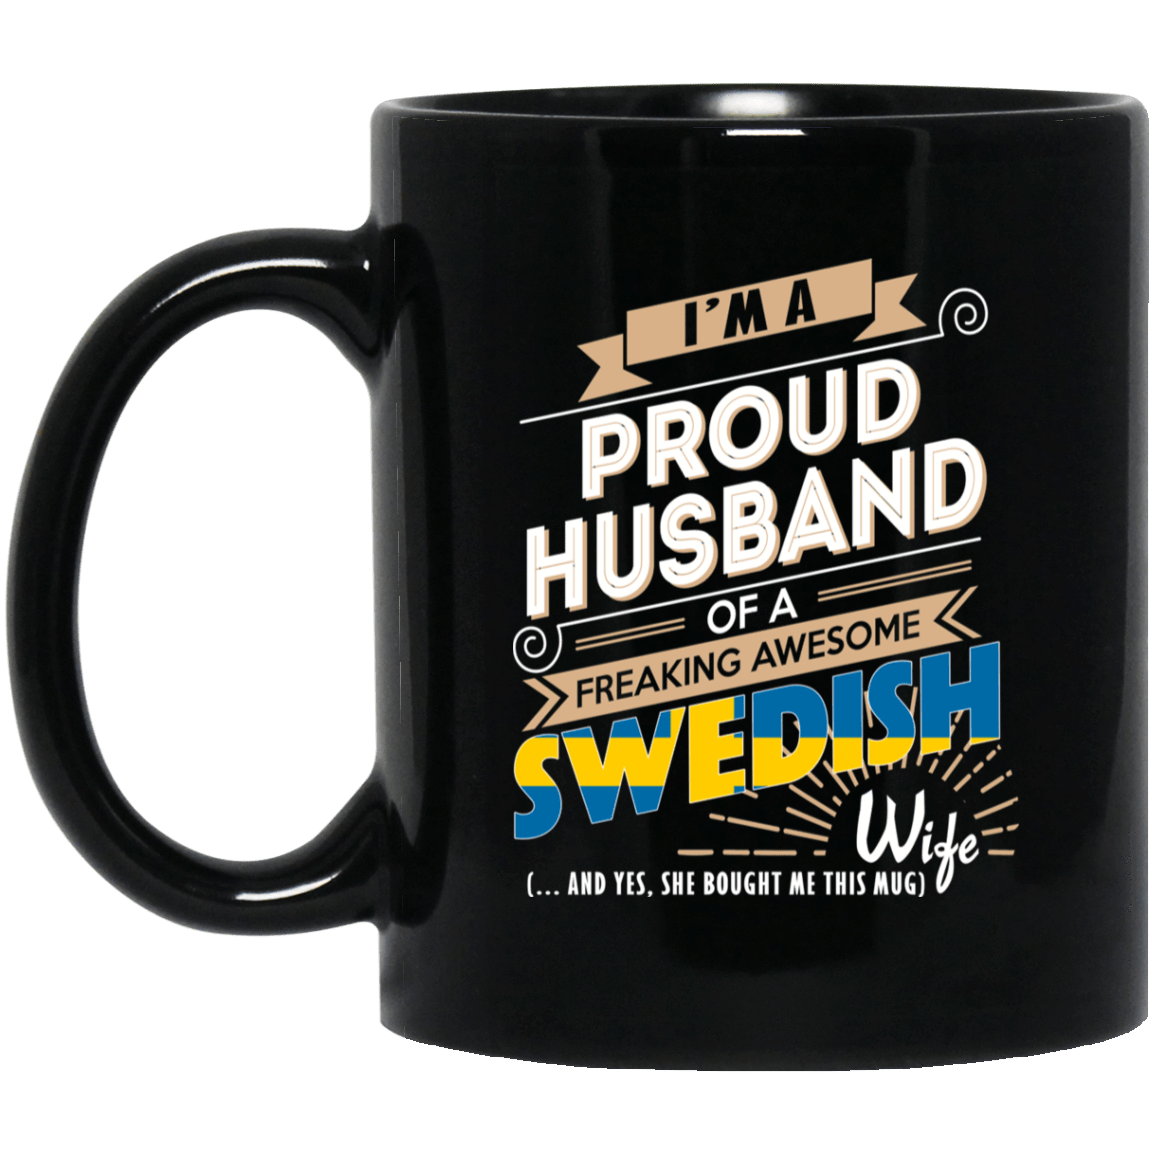 Proud Husband Of A Freaking Awesome Swedish Wife Mug 1065-10181-72136509-49307 - Tee Ript